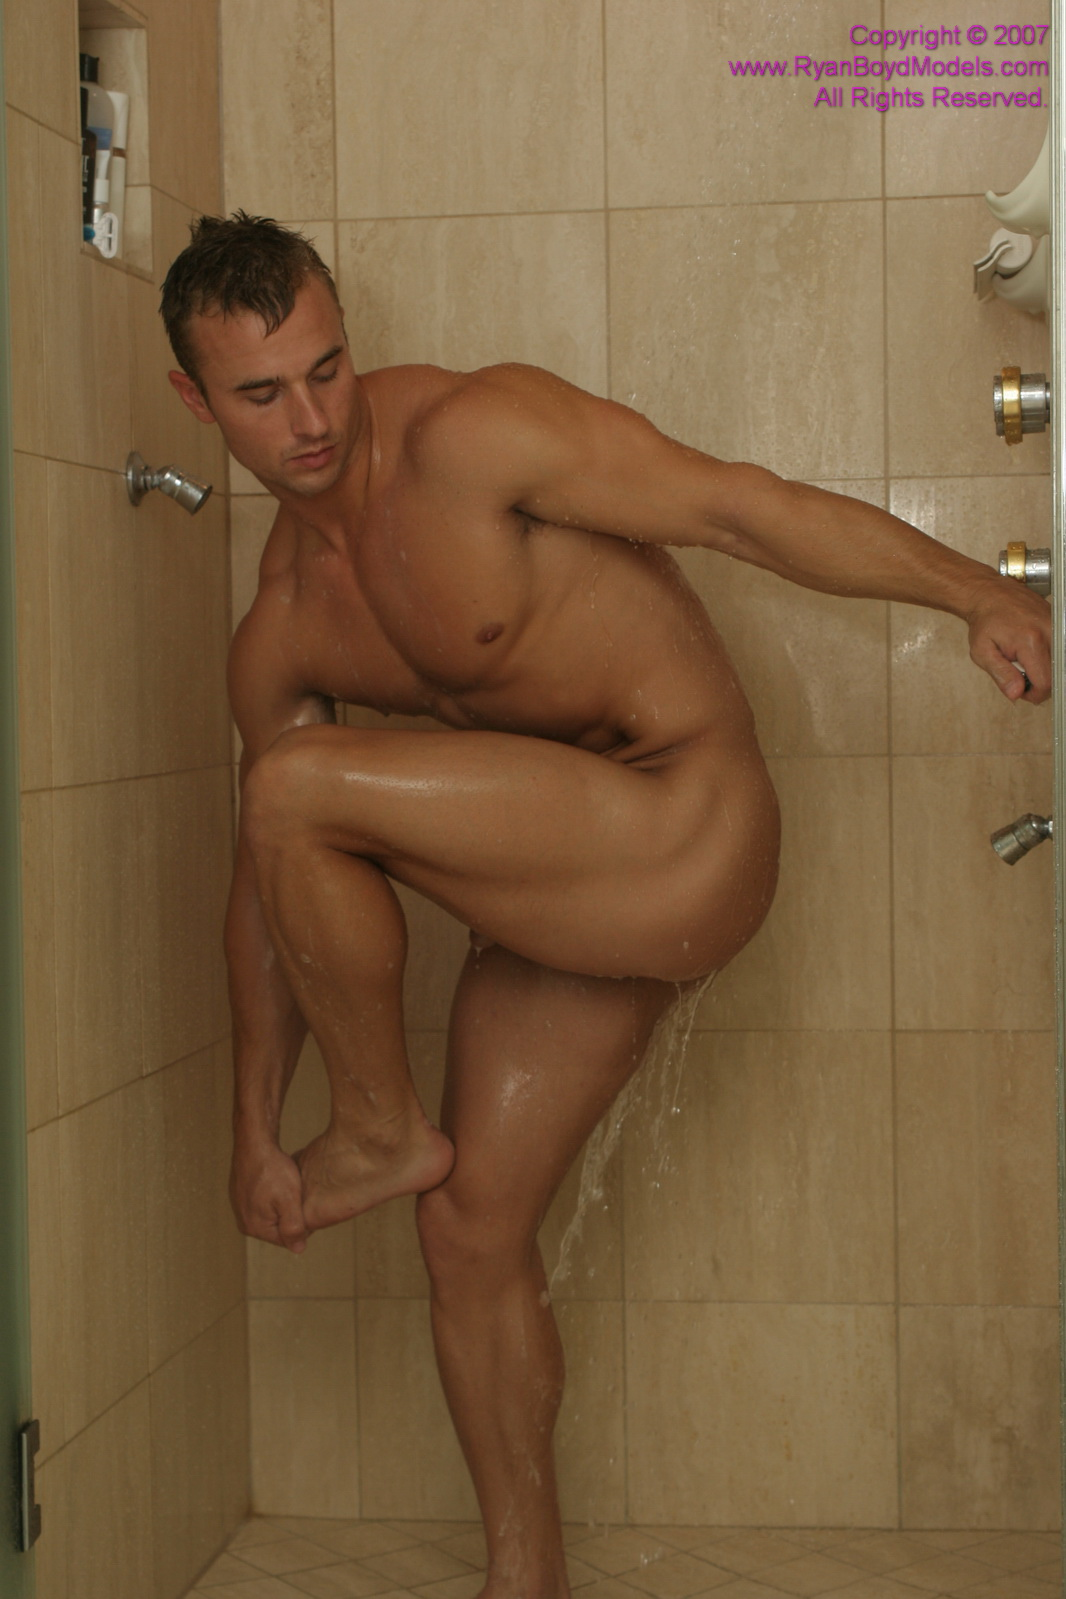 Nude Blond Male